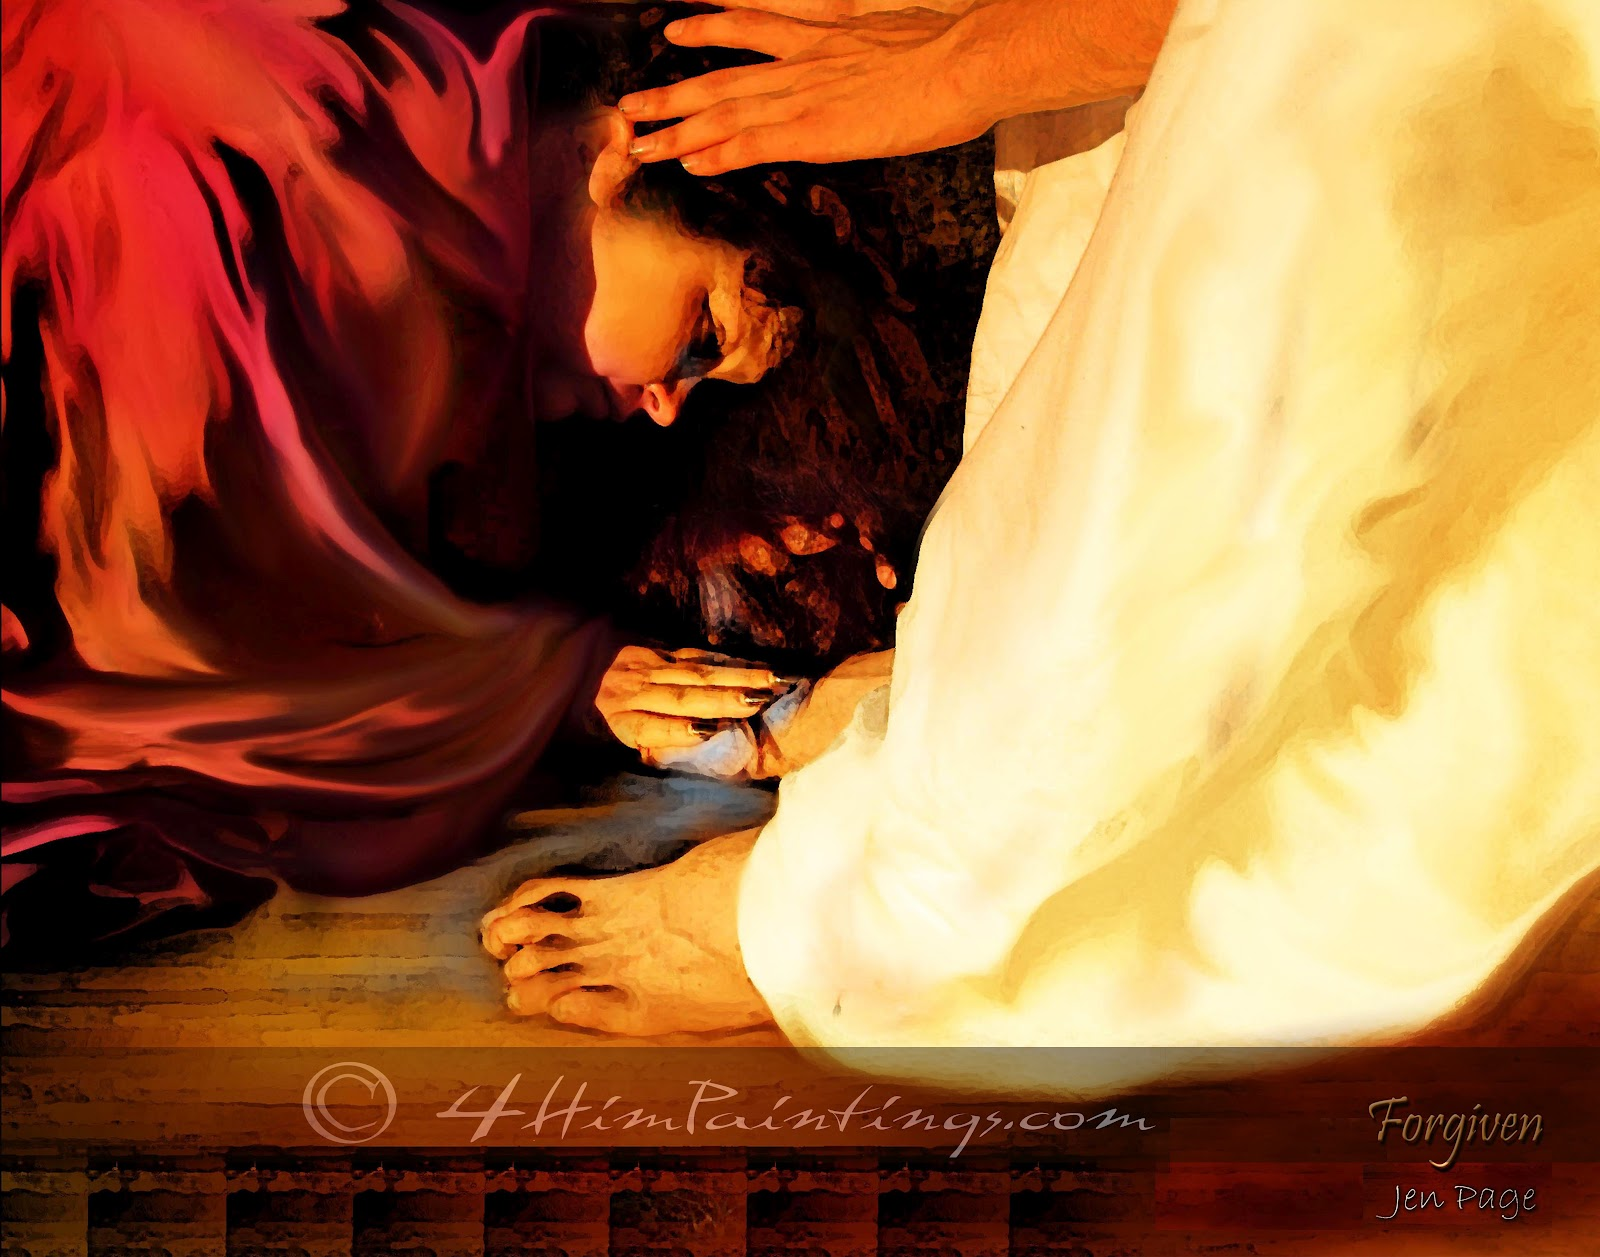 Sinful woman forgiven by jesus christ - 2 5